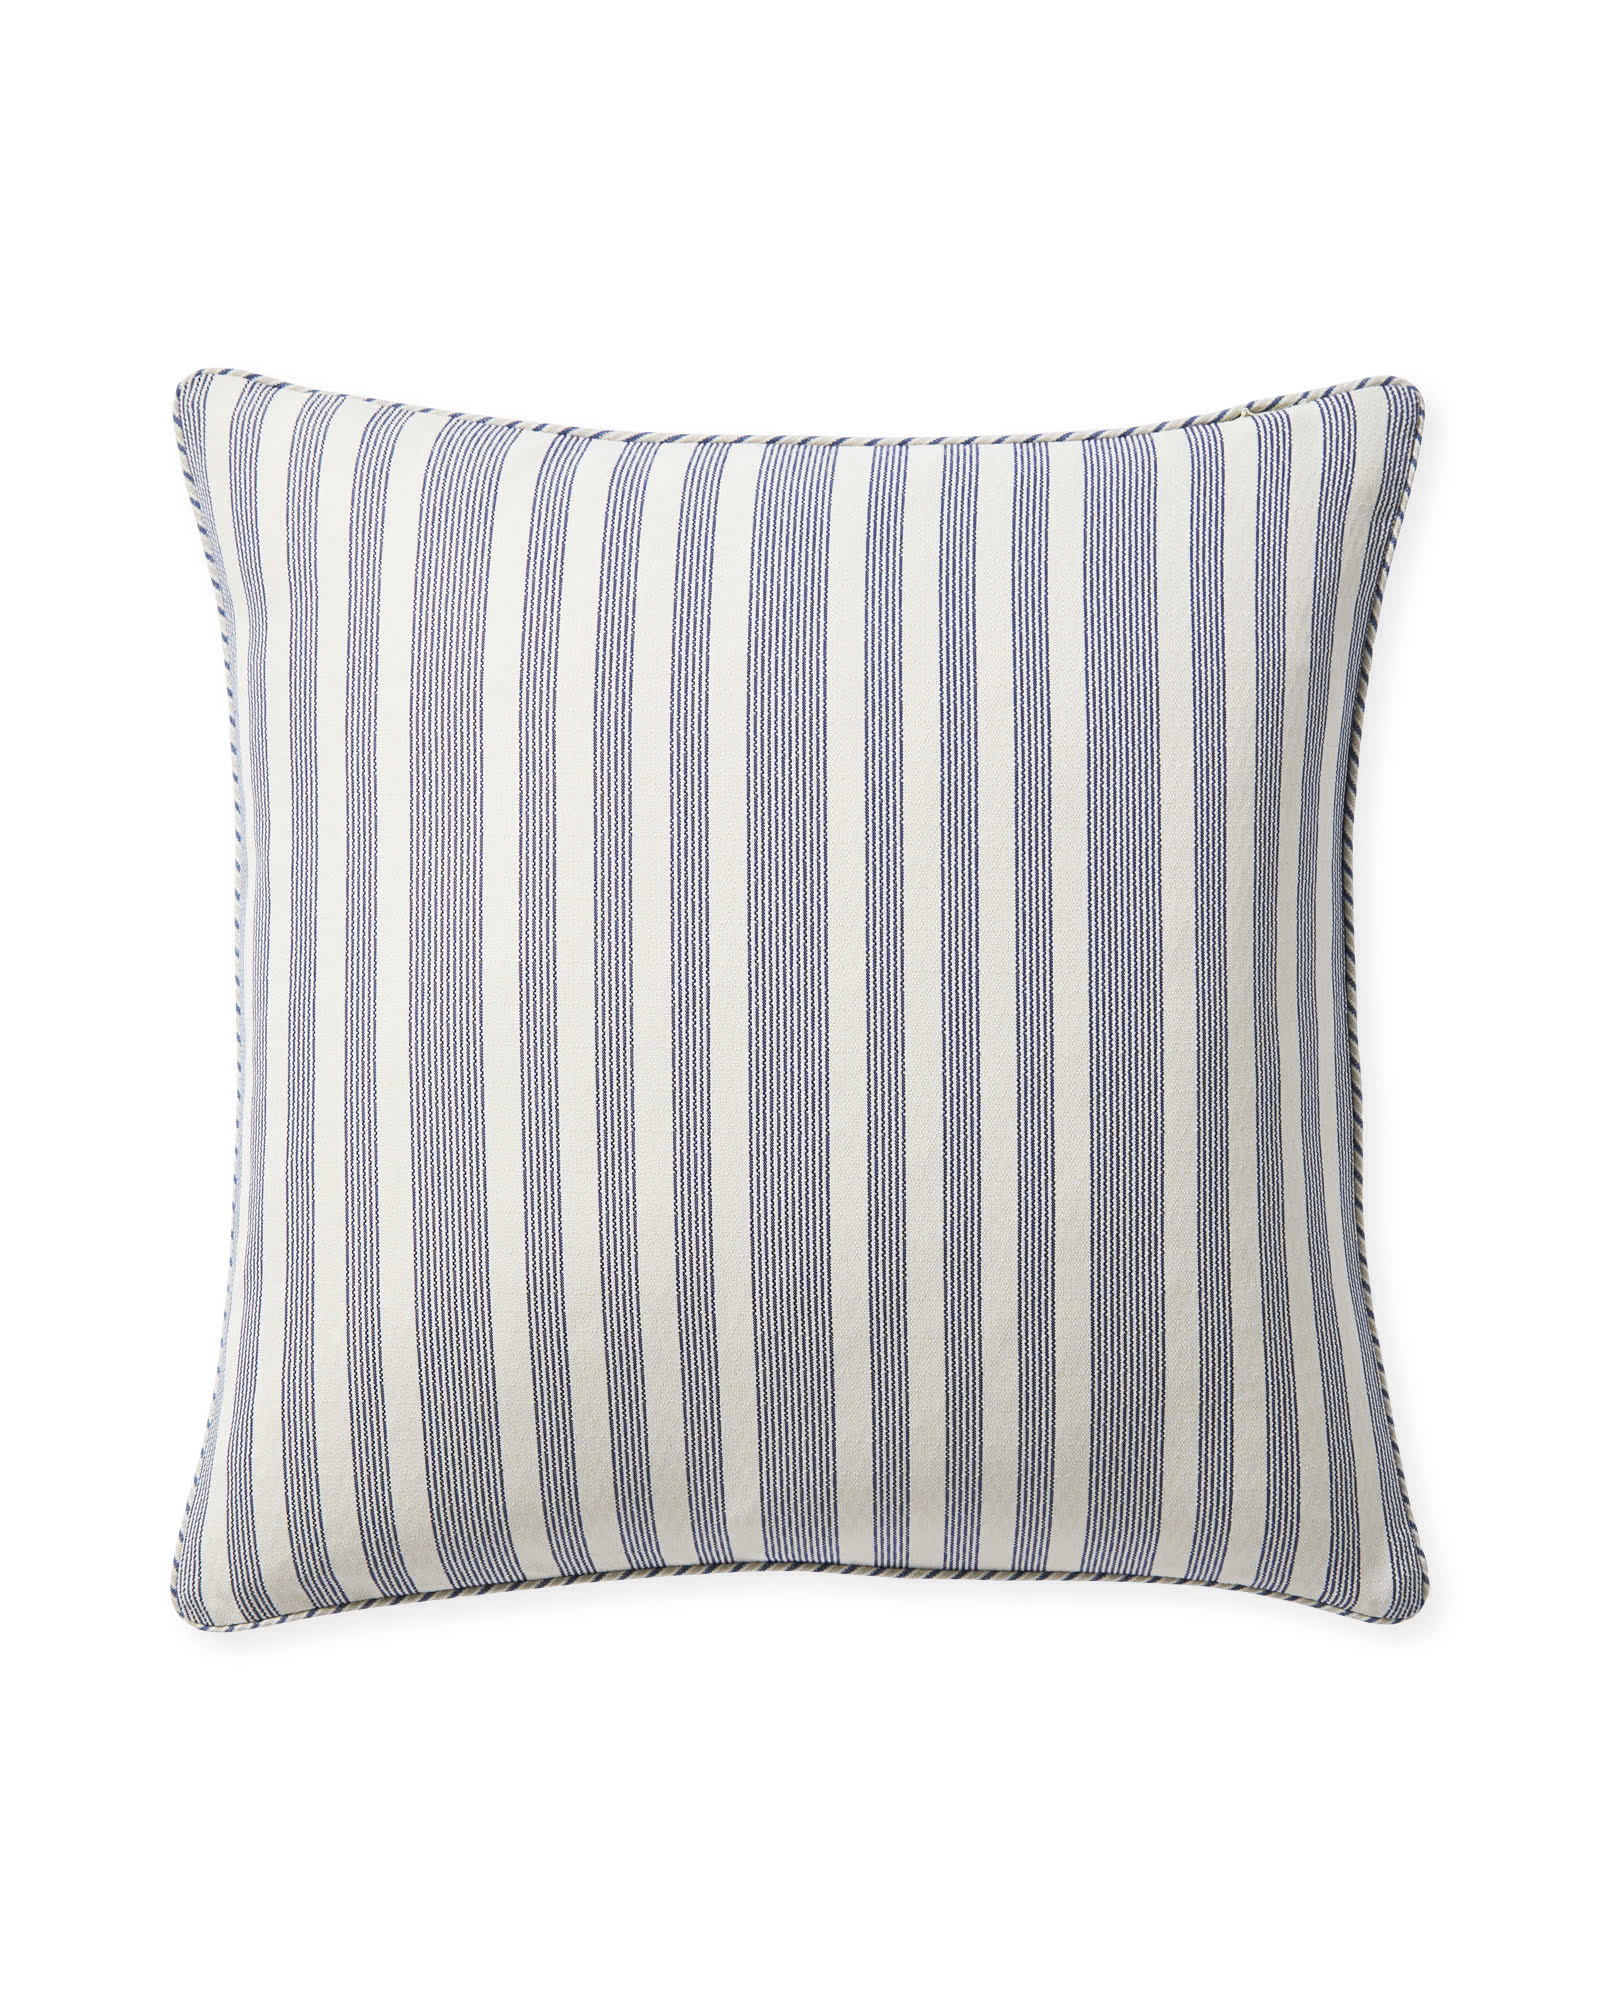 Perennials® Portside Stripe Outdoor Pillow Cover,